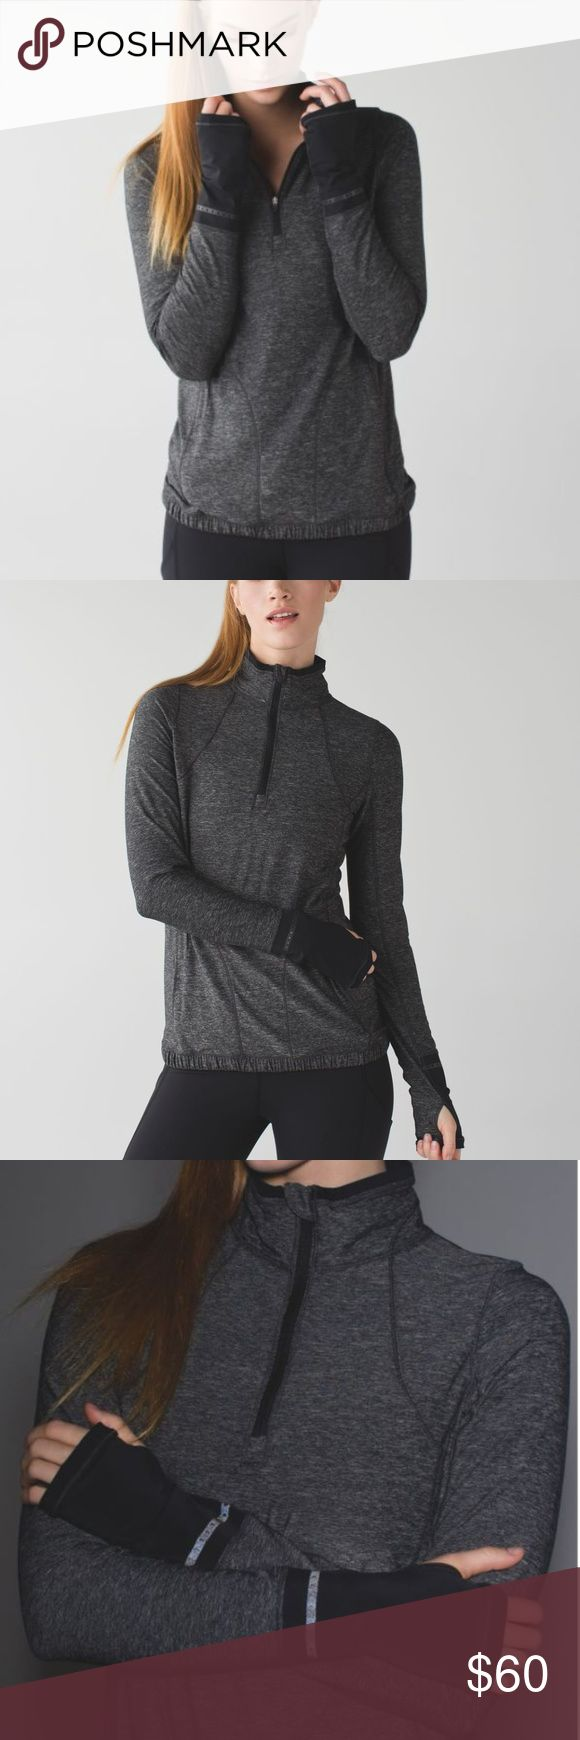 Lululemon Gray Pace Pusher Half 1/2 Zip Up Sz 2 Like New  Lululemon Heathered Gray Pace Pusher Half Zip Up  Subtle reflectivity in this sweat-wicking layer helps keep us visible on dawn and dusk runs. This top's barely-there feel keeps us covered without weighing us down. Run on.  Light Luon® fabric is sweat-wicking and four-way stretch LYCRA® fibres add great shape retention thumbholes help keep sleeves down while you run front zip pocket keeps your small valuables secure 1/2 zipper and a…